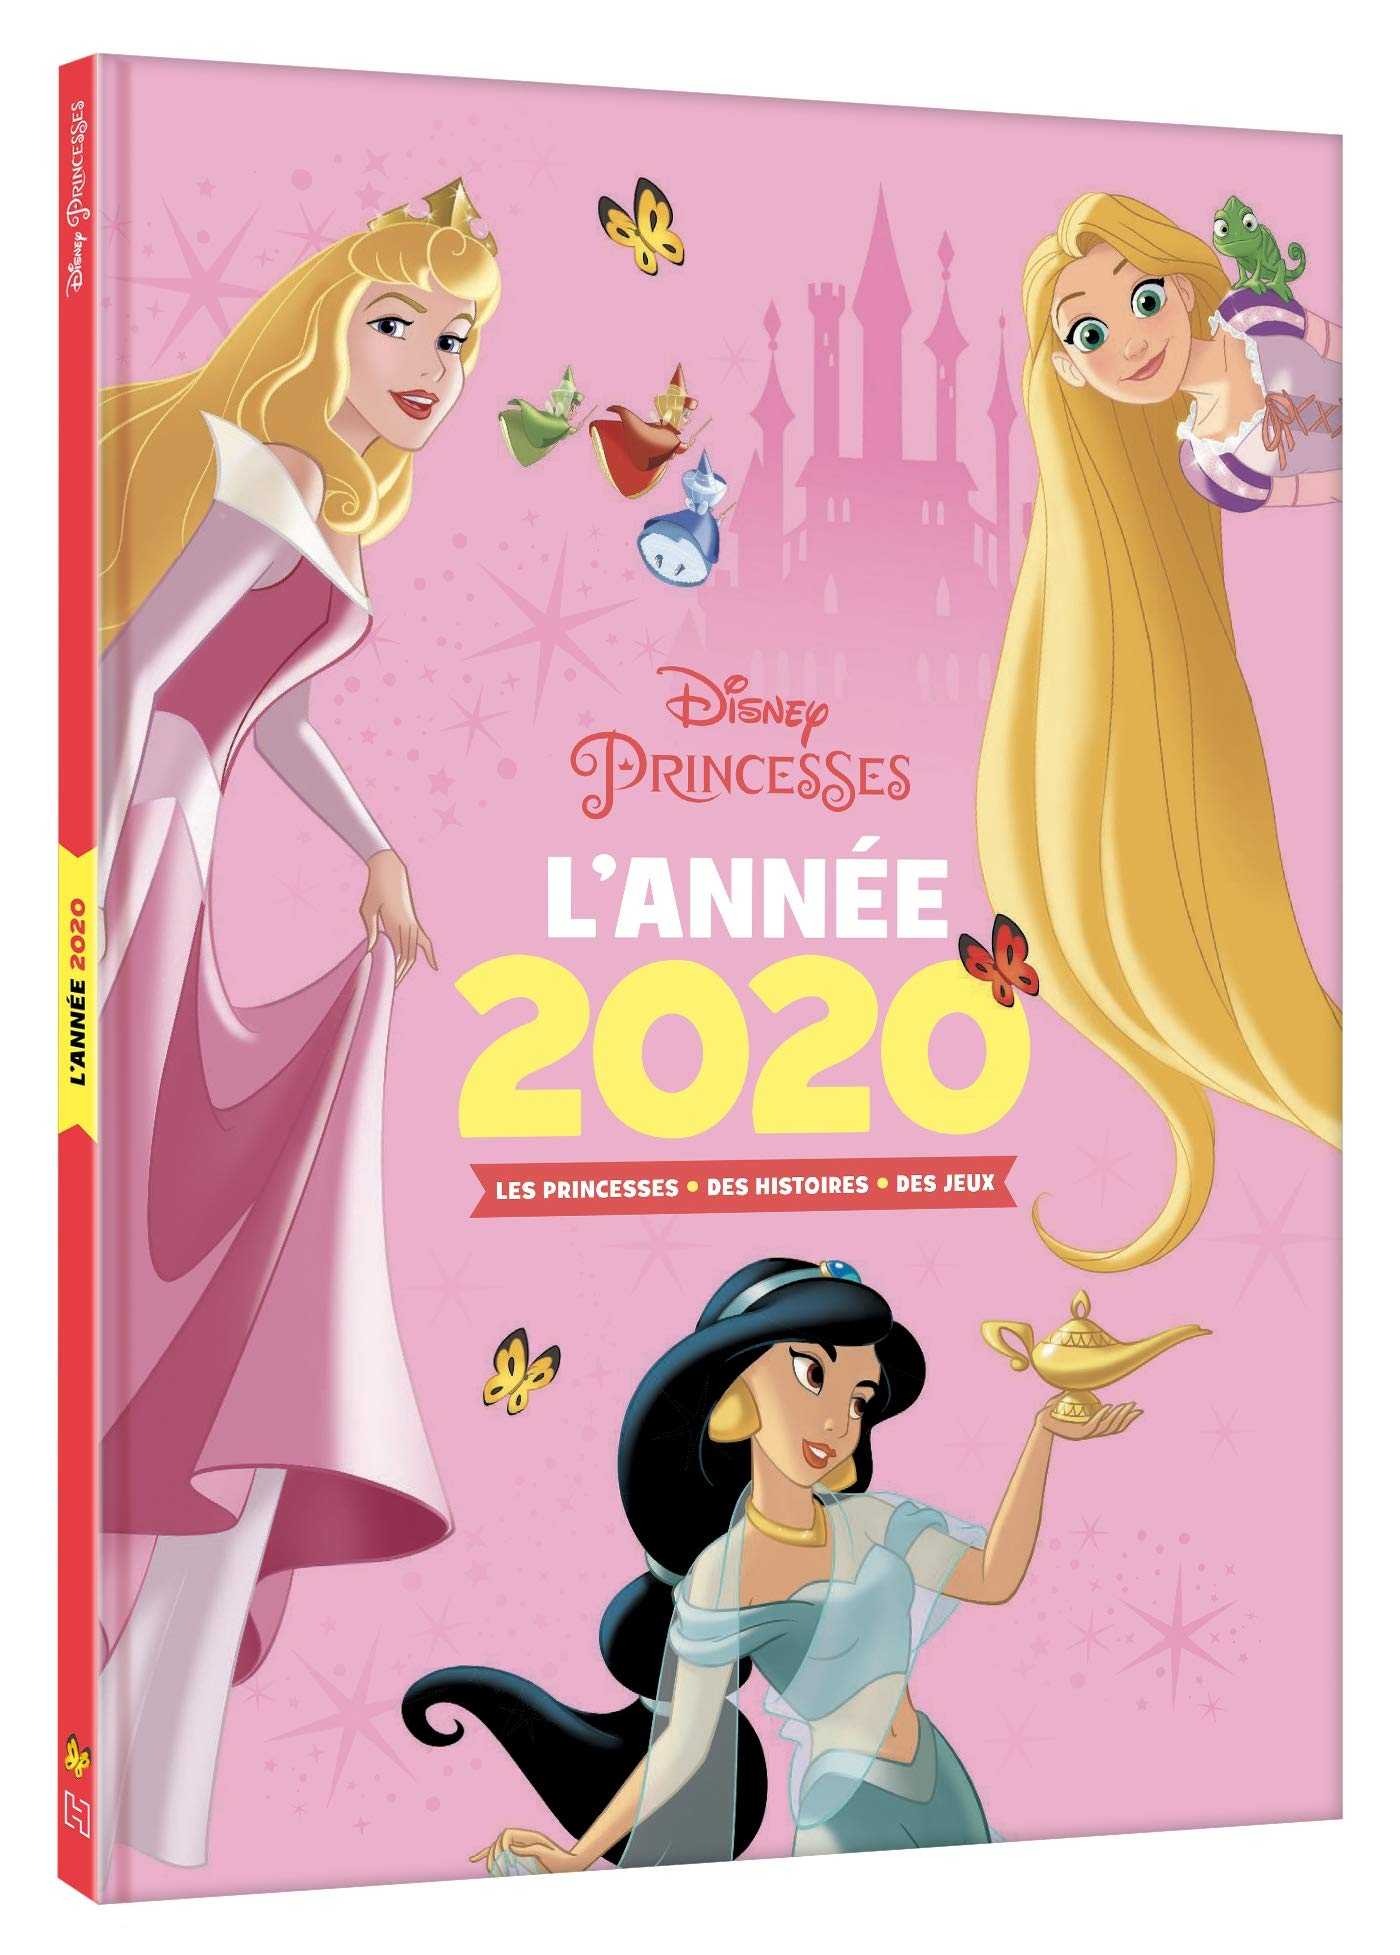 Disney Princesses L Annee 2020 Annuels French Edition